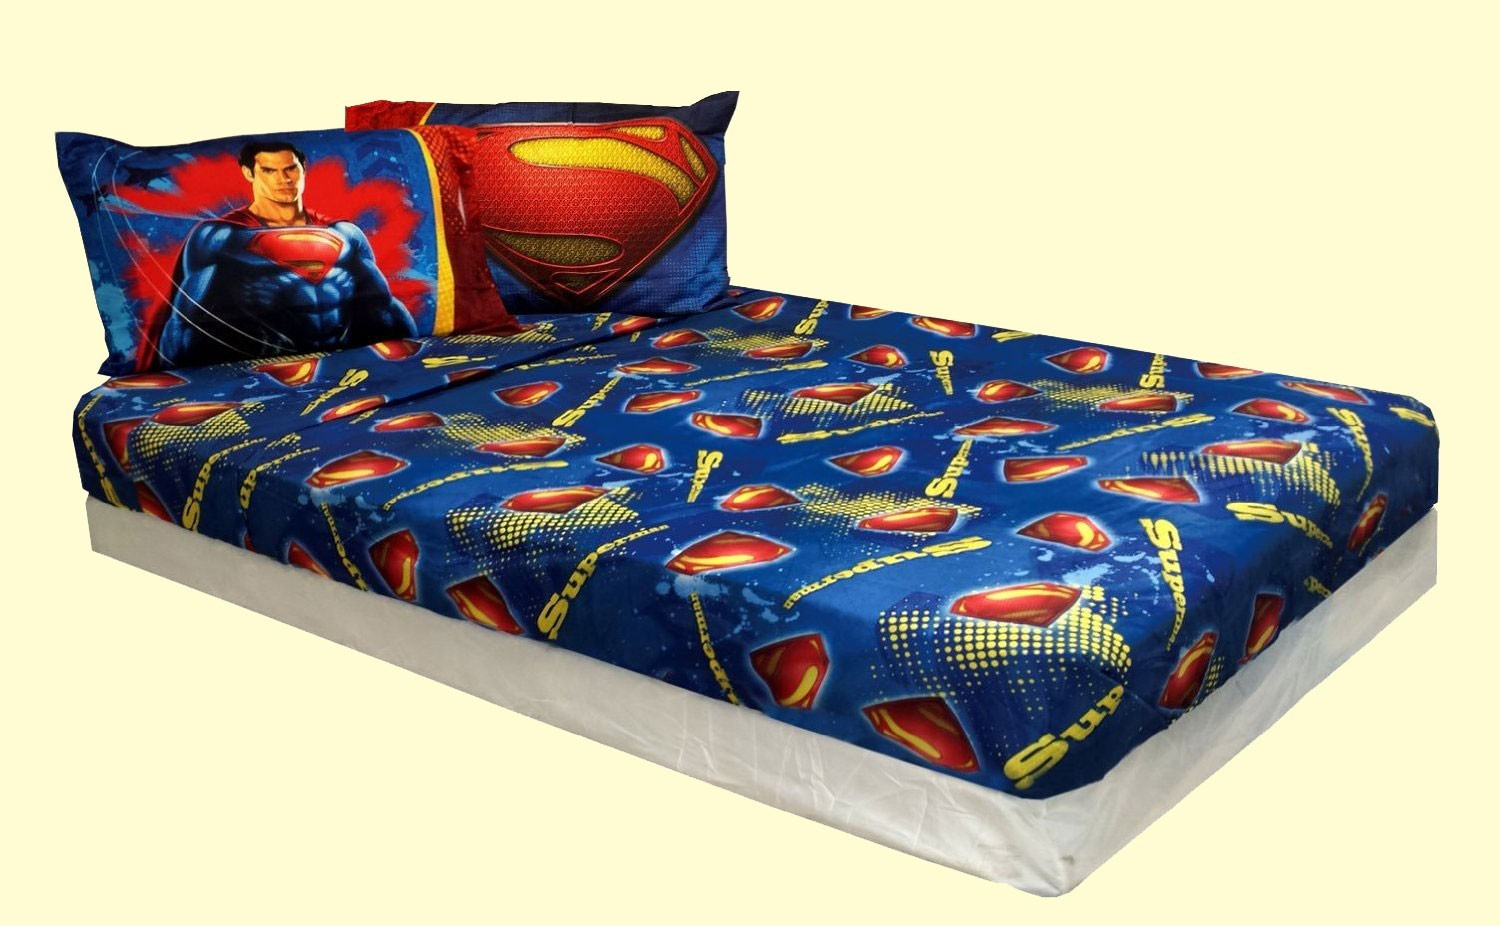 imported blankets > disney comforter sets > man of steel comforter